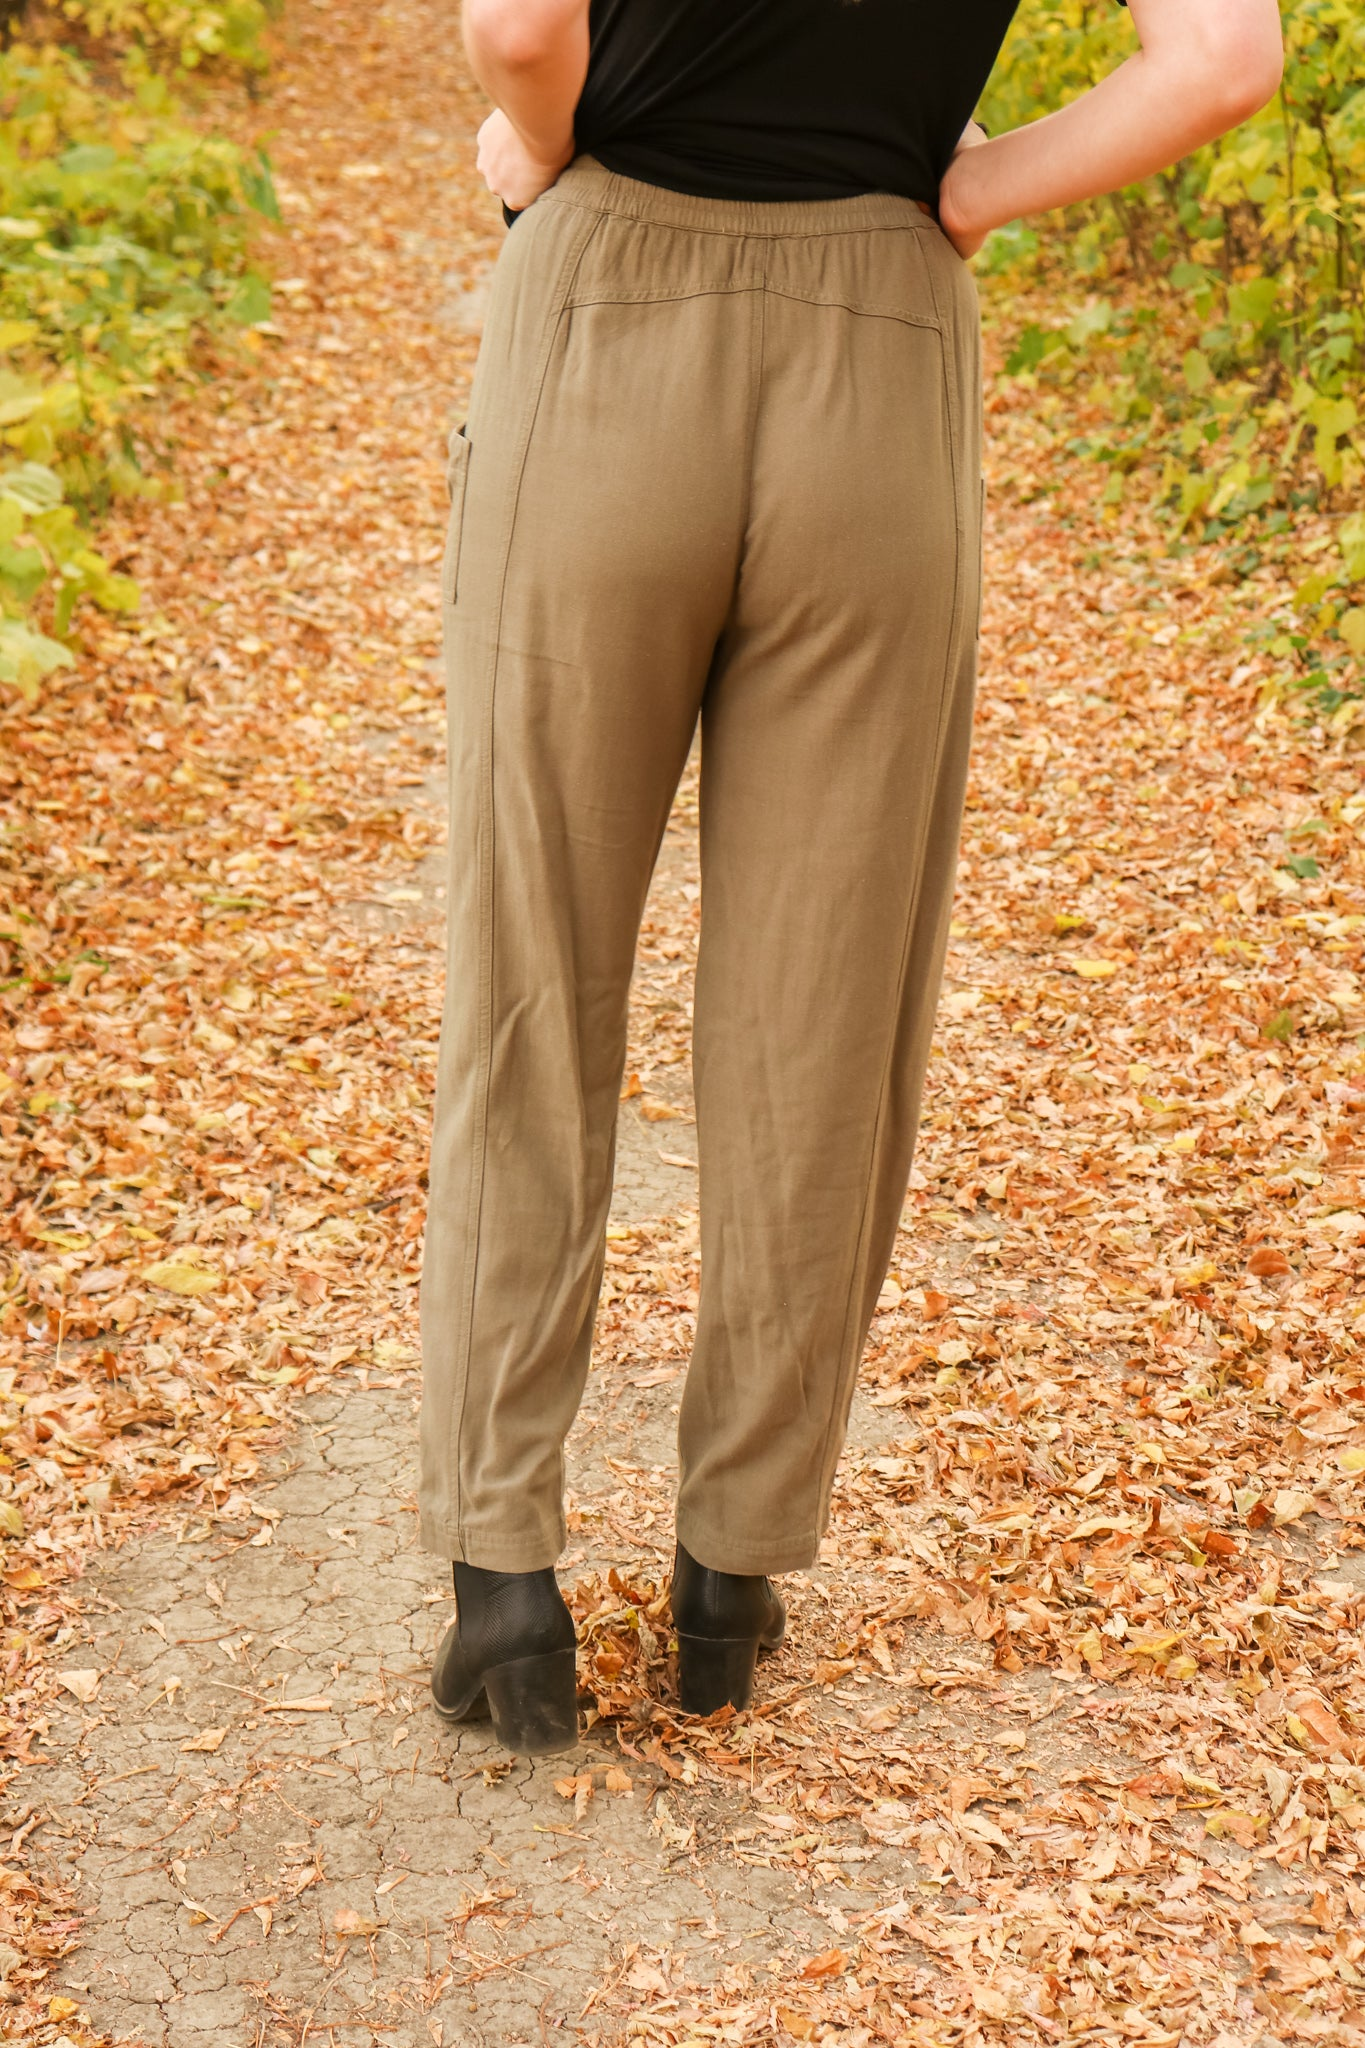 Olive These Pants 3 - JQ Clothing Co. - Oakes ND